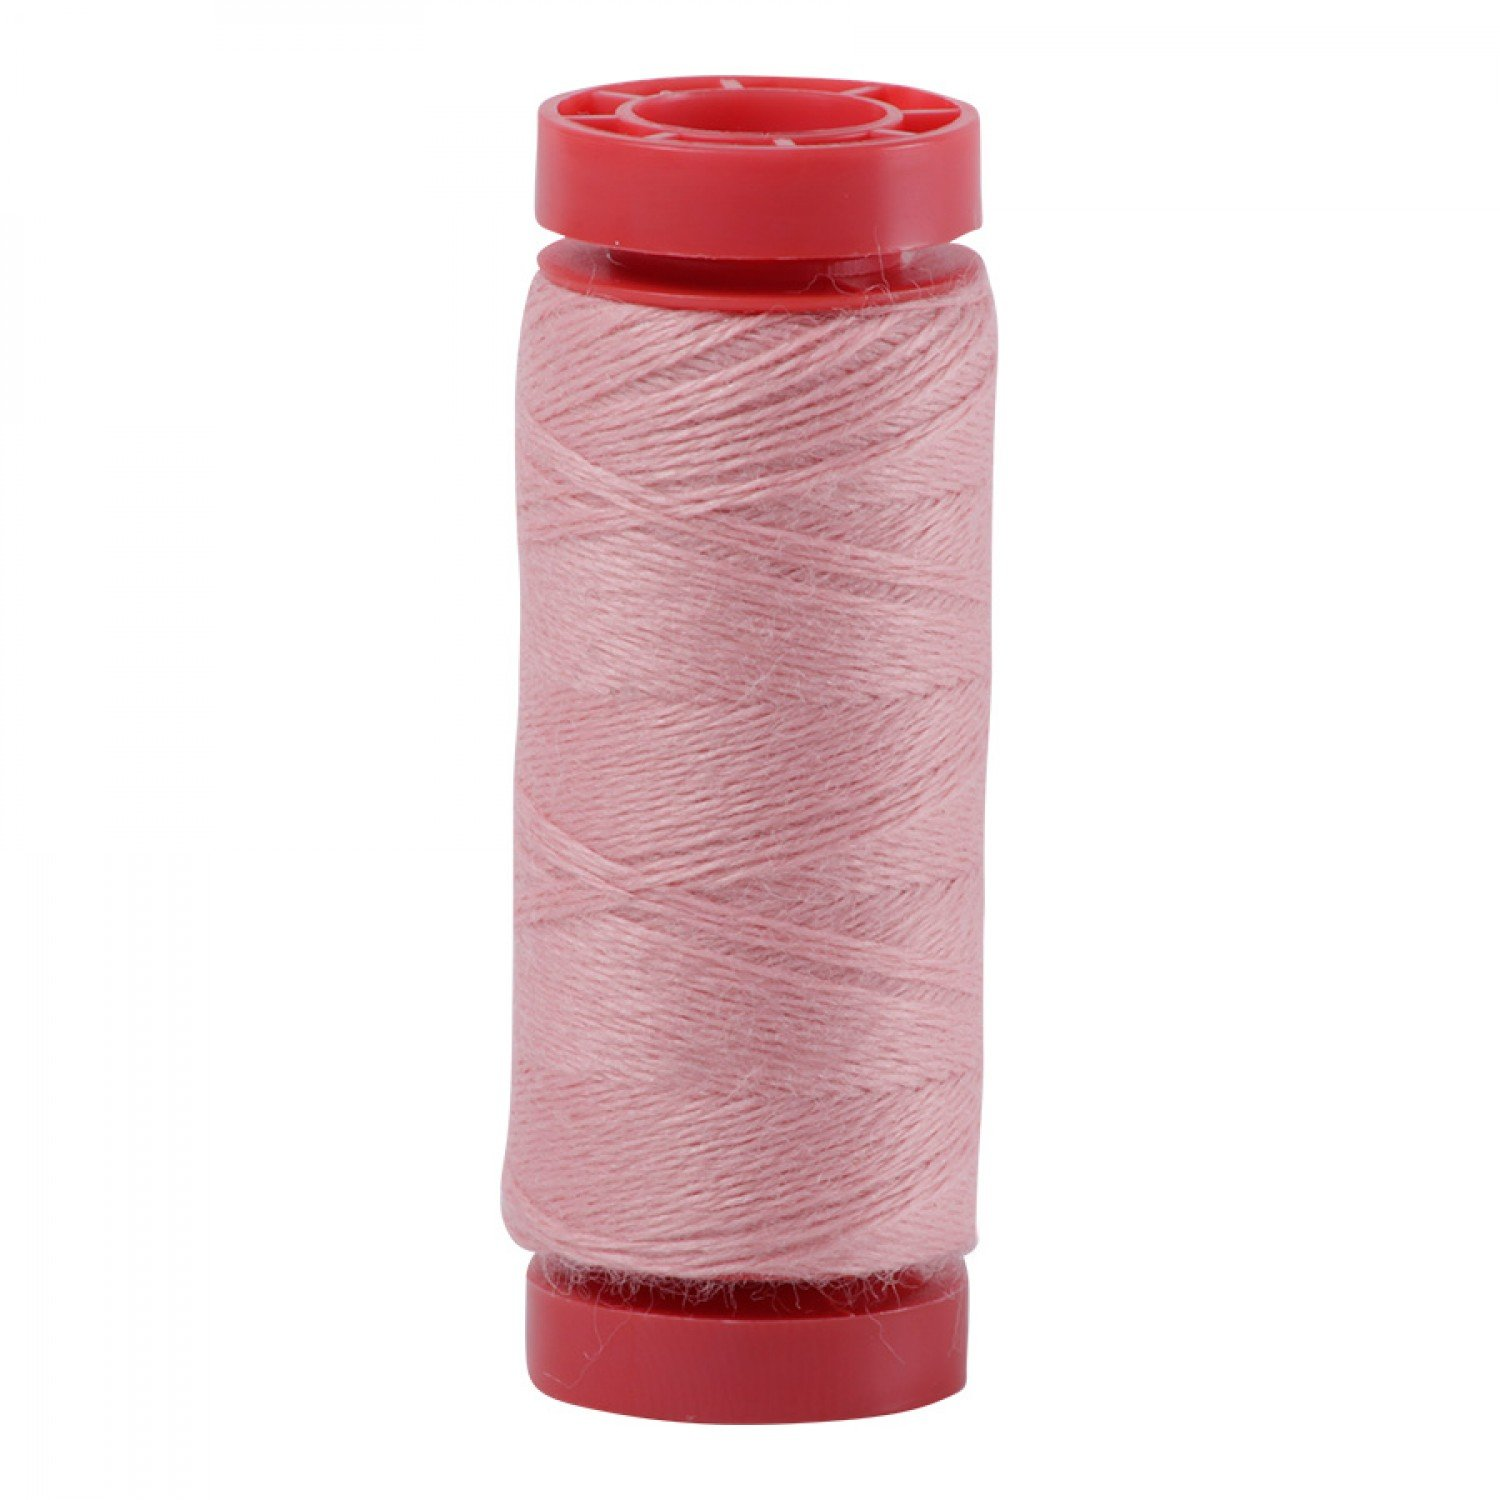 Aurifil 12wt Lana Wool Thread - 8425 Pink